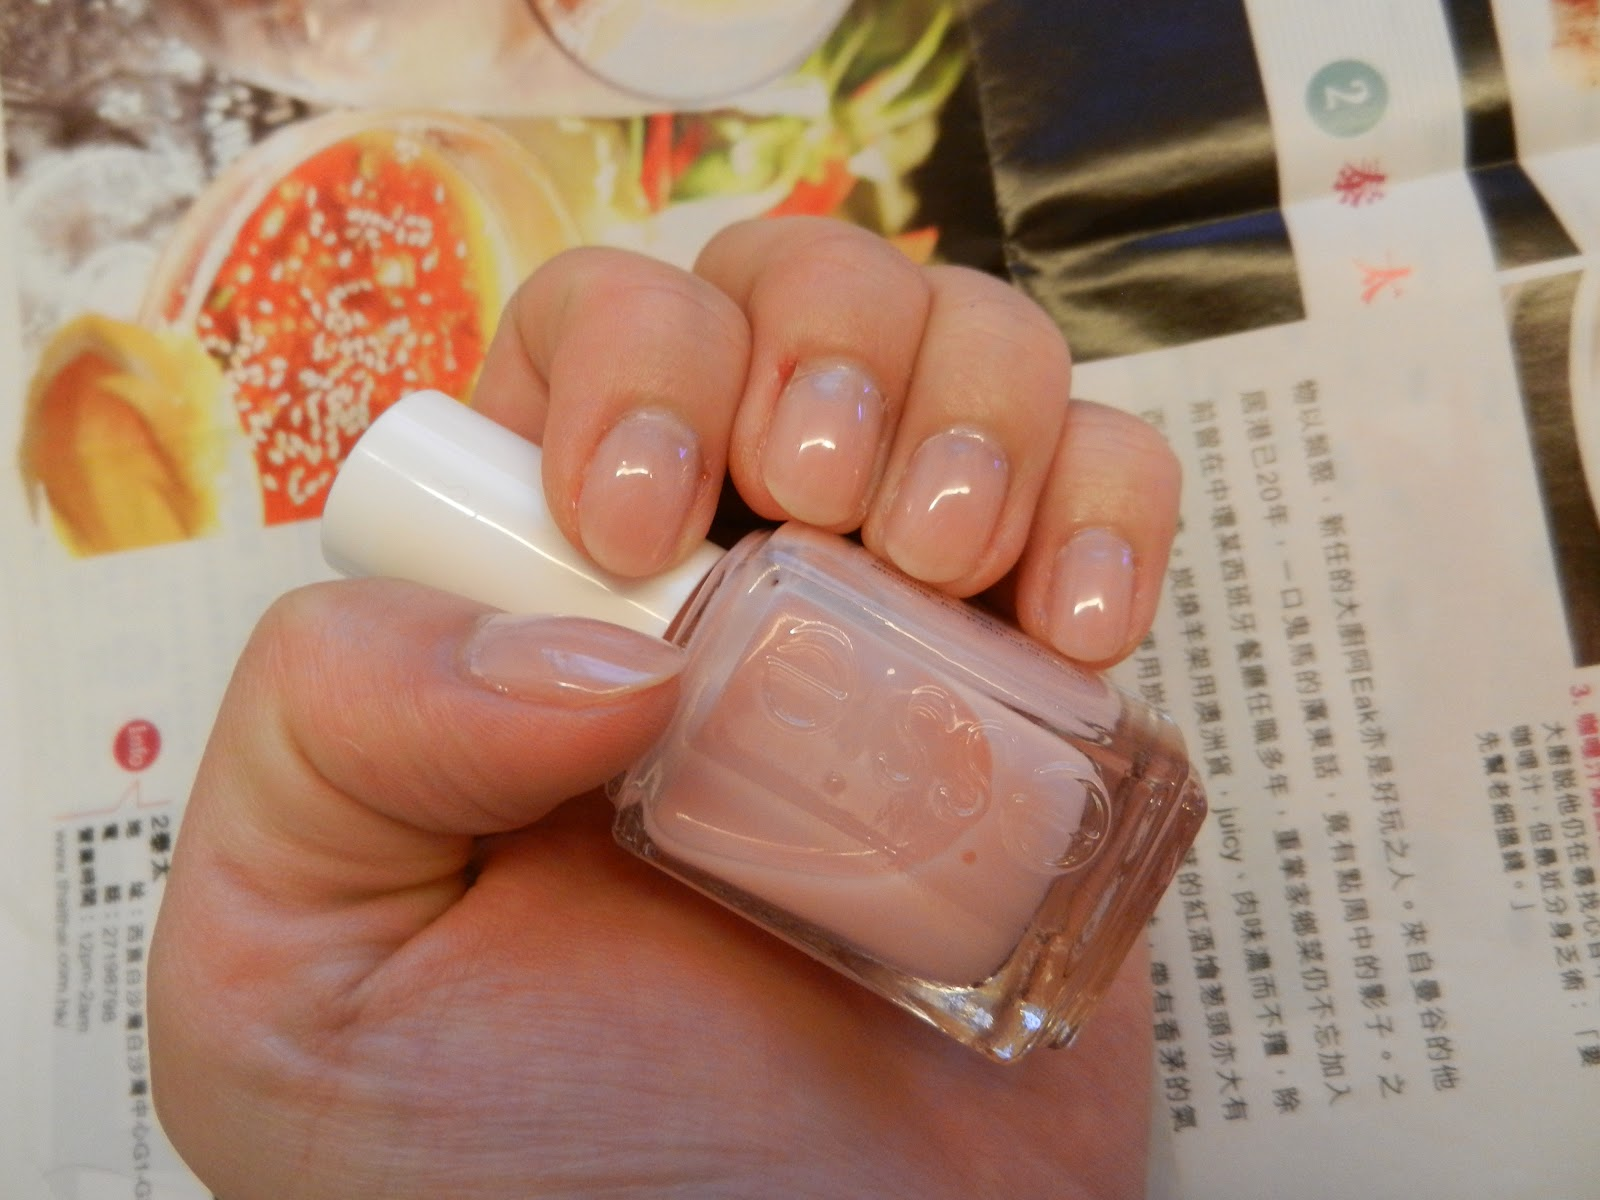 Beauty Starts from DailyLife ♥♥♥: Essie Nail Polish 指甲油 ...